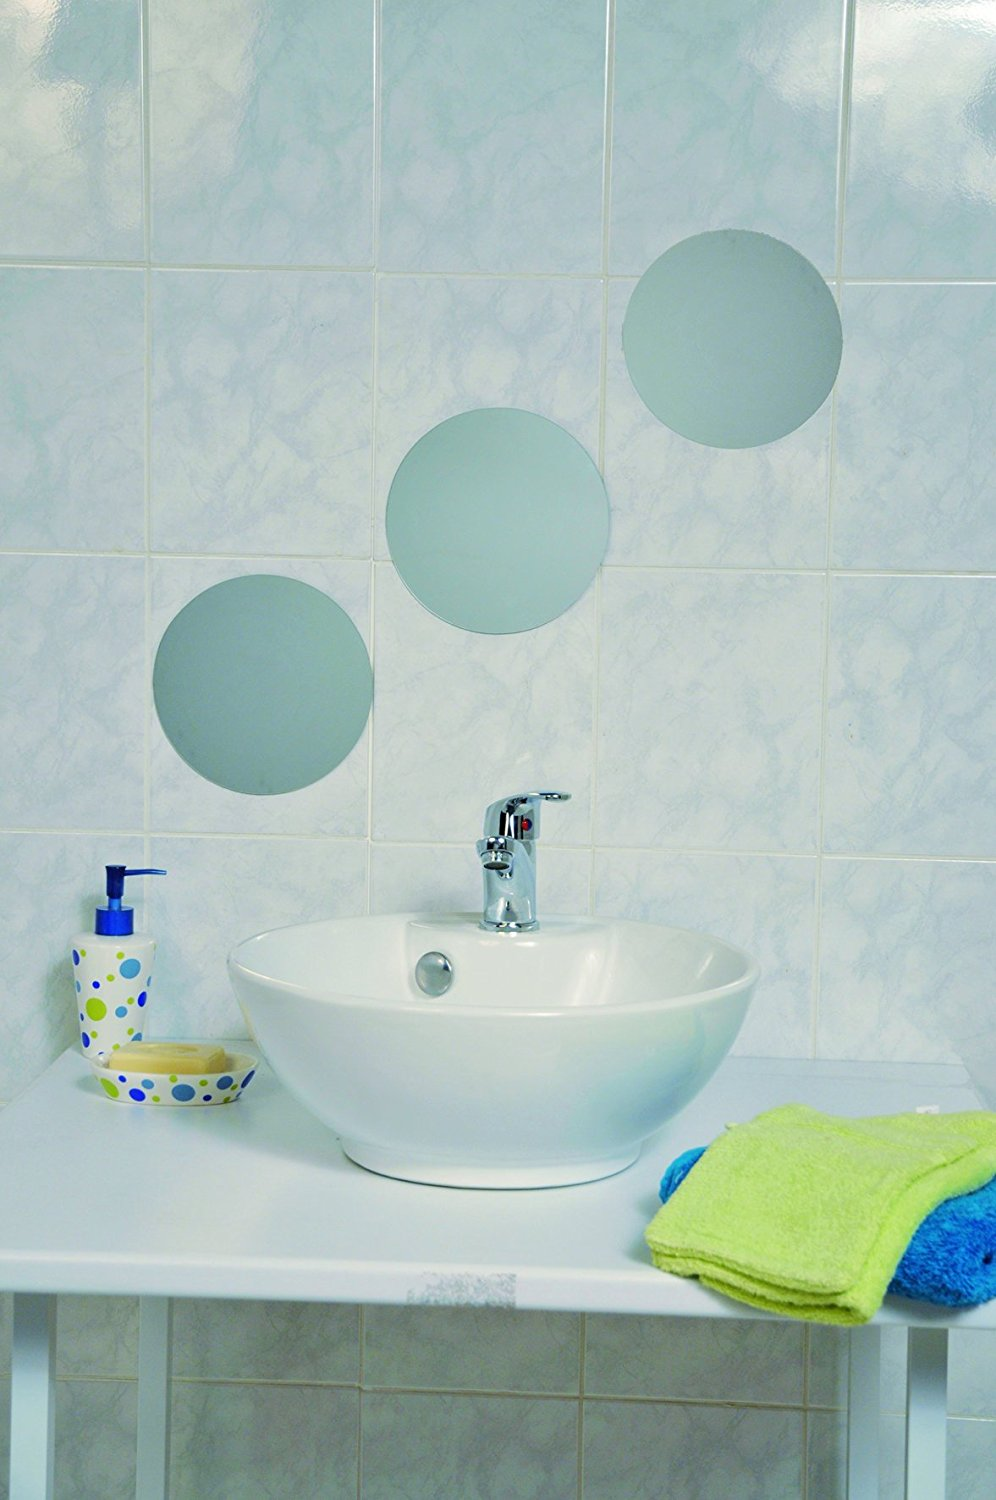 Get Quotations Evideco 850099 Decorative Wall Bathroom Self Adhesive Round Mirrors Diameter 7 8 Inch Set Of